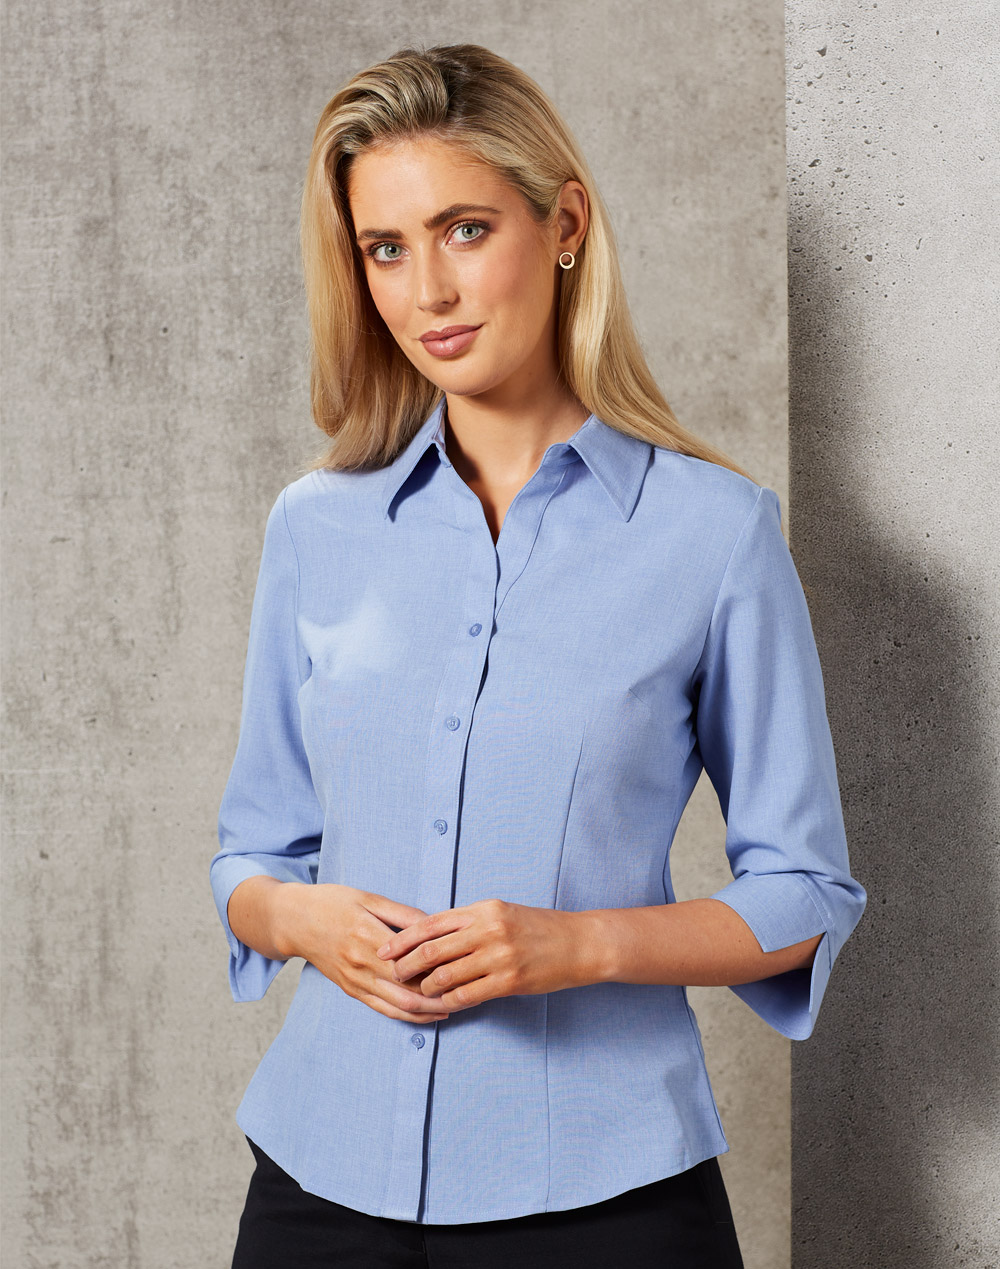 M8600Q Women's CoolDry 3/4 Sleeve Shirt